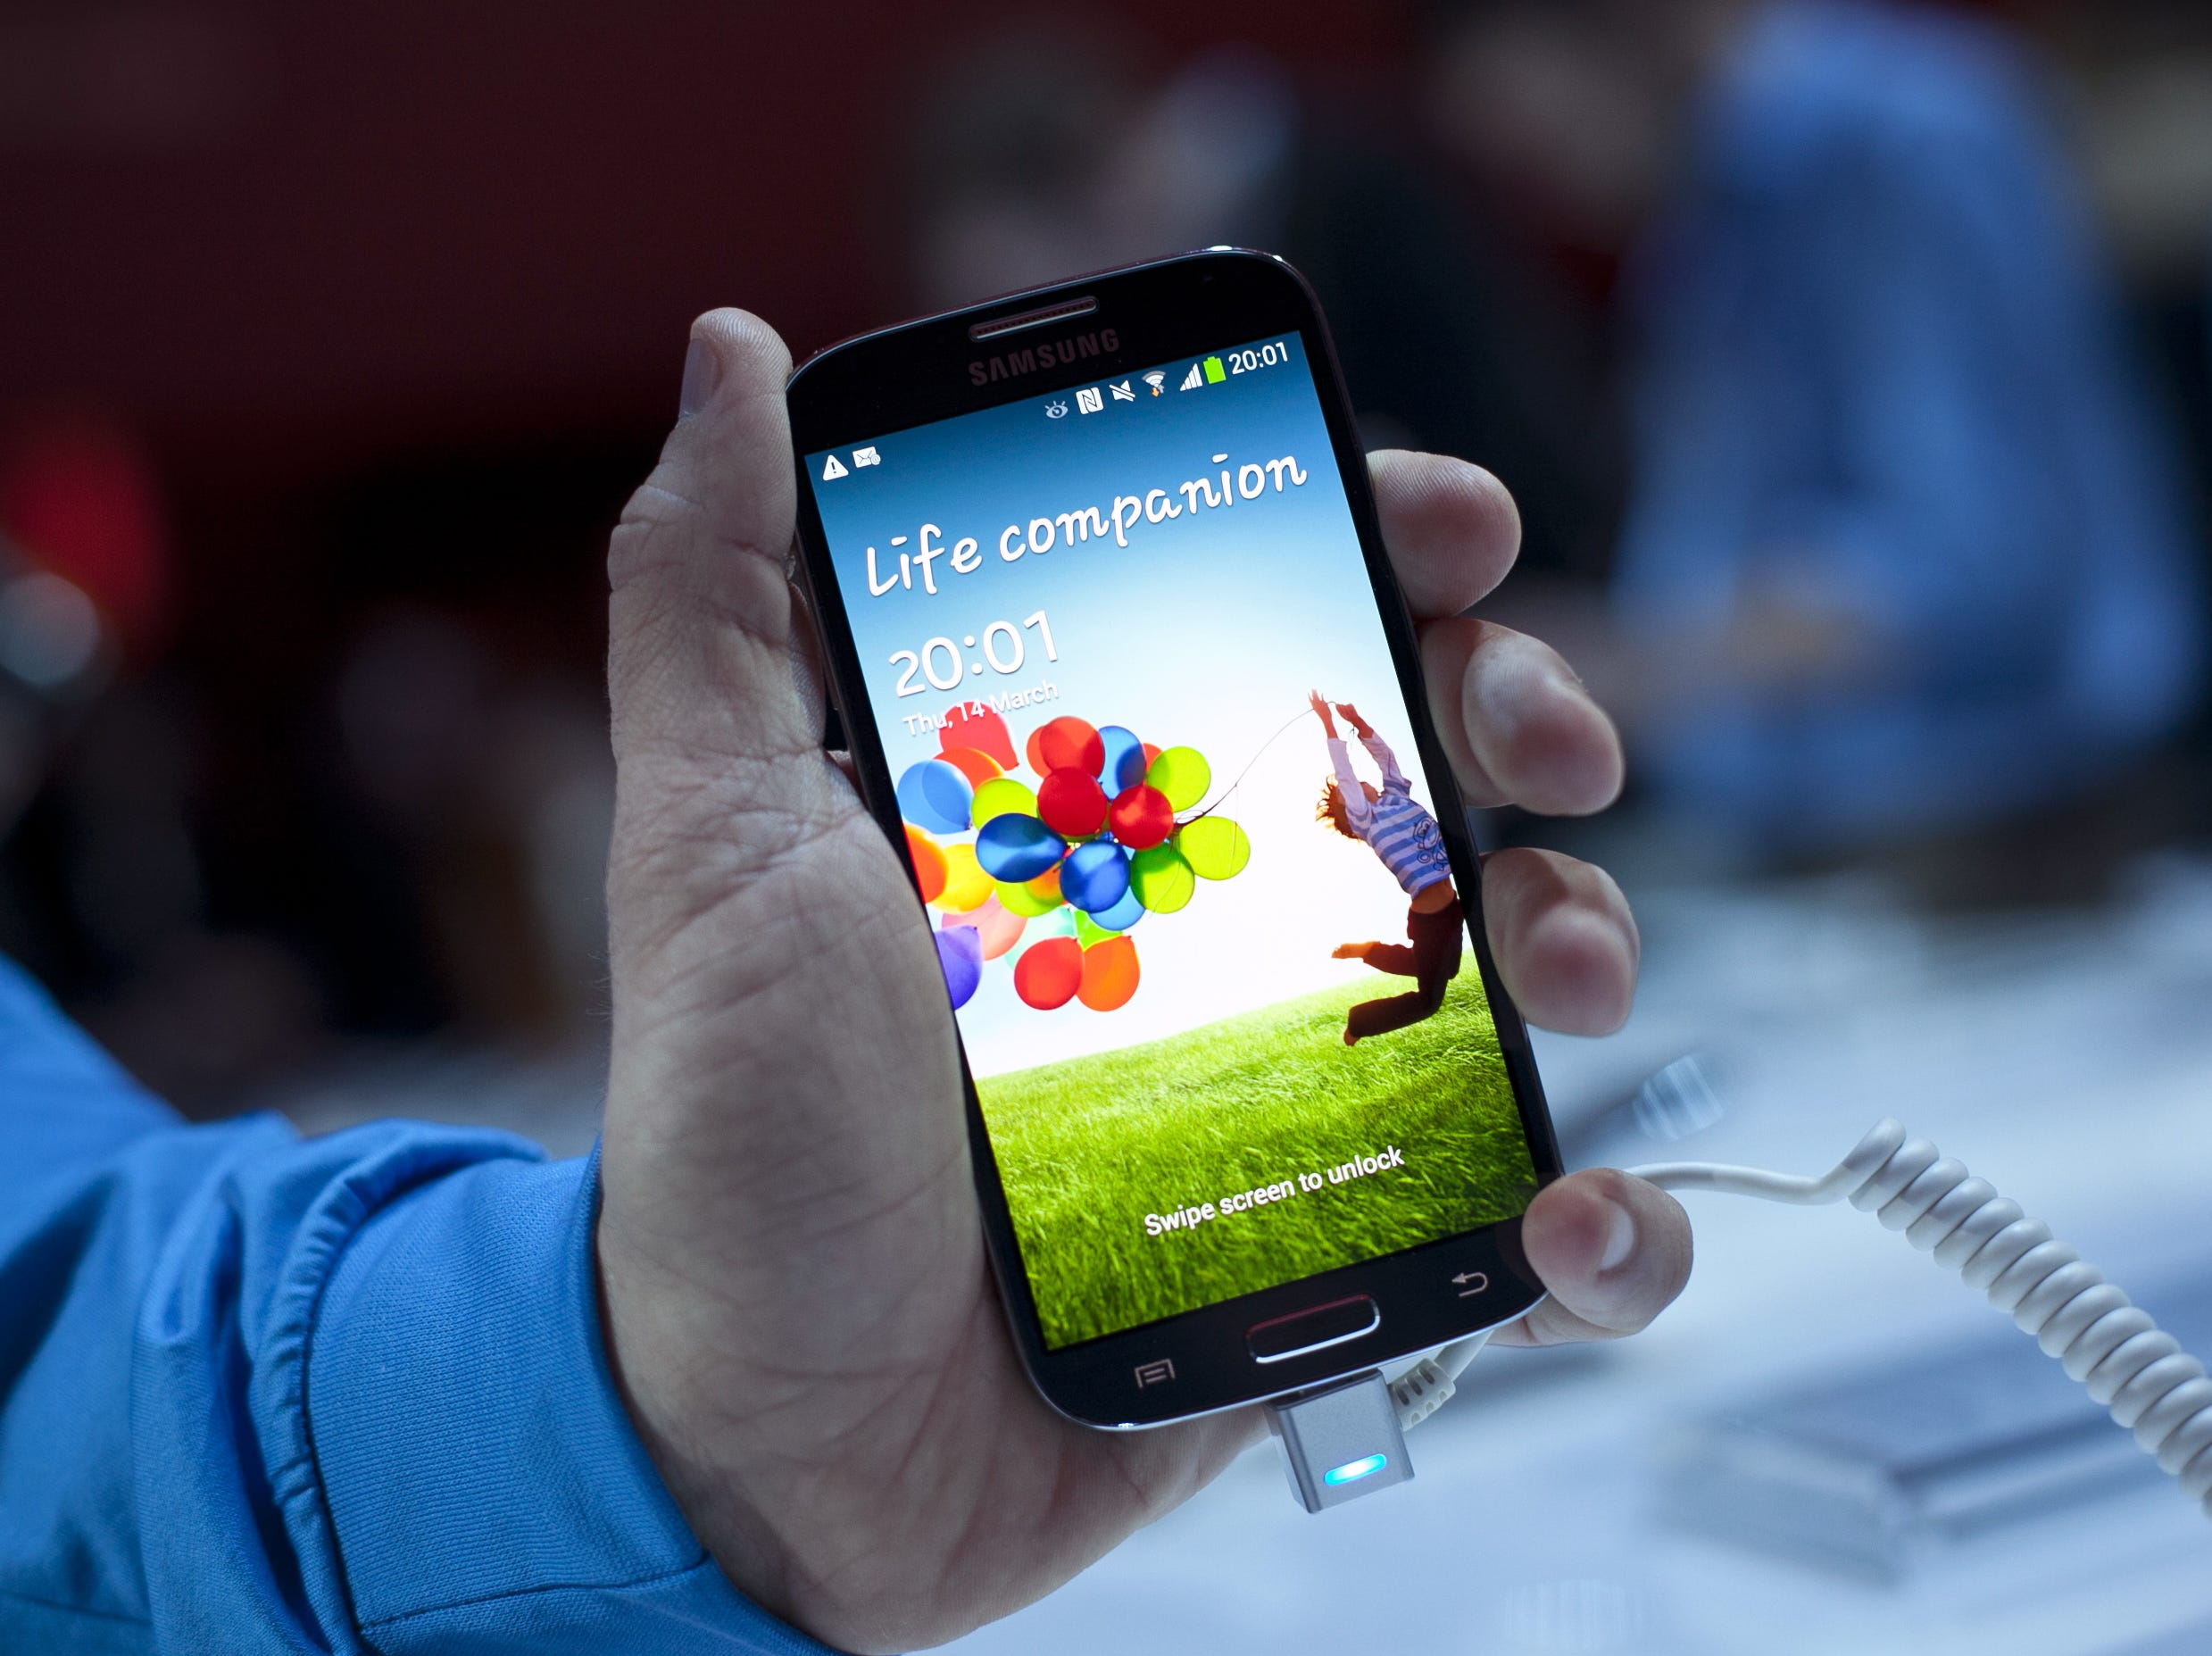 A Samsung employee displays the Samsung Galaxy S IV for a photo March 14, 2013 in New York City. The Galaxy S IV features a five-inch 1080p HD screen, a 1.9GHz quad-core processor, a 13-megapixel rear camera and ships with the Android 4.2.2 Jelly Bean.